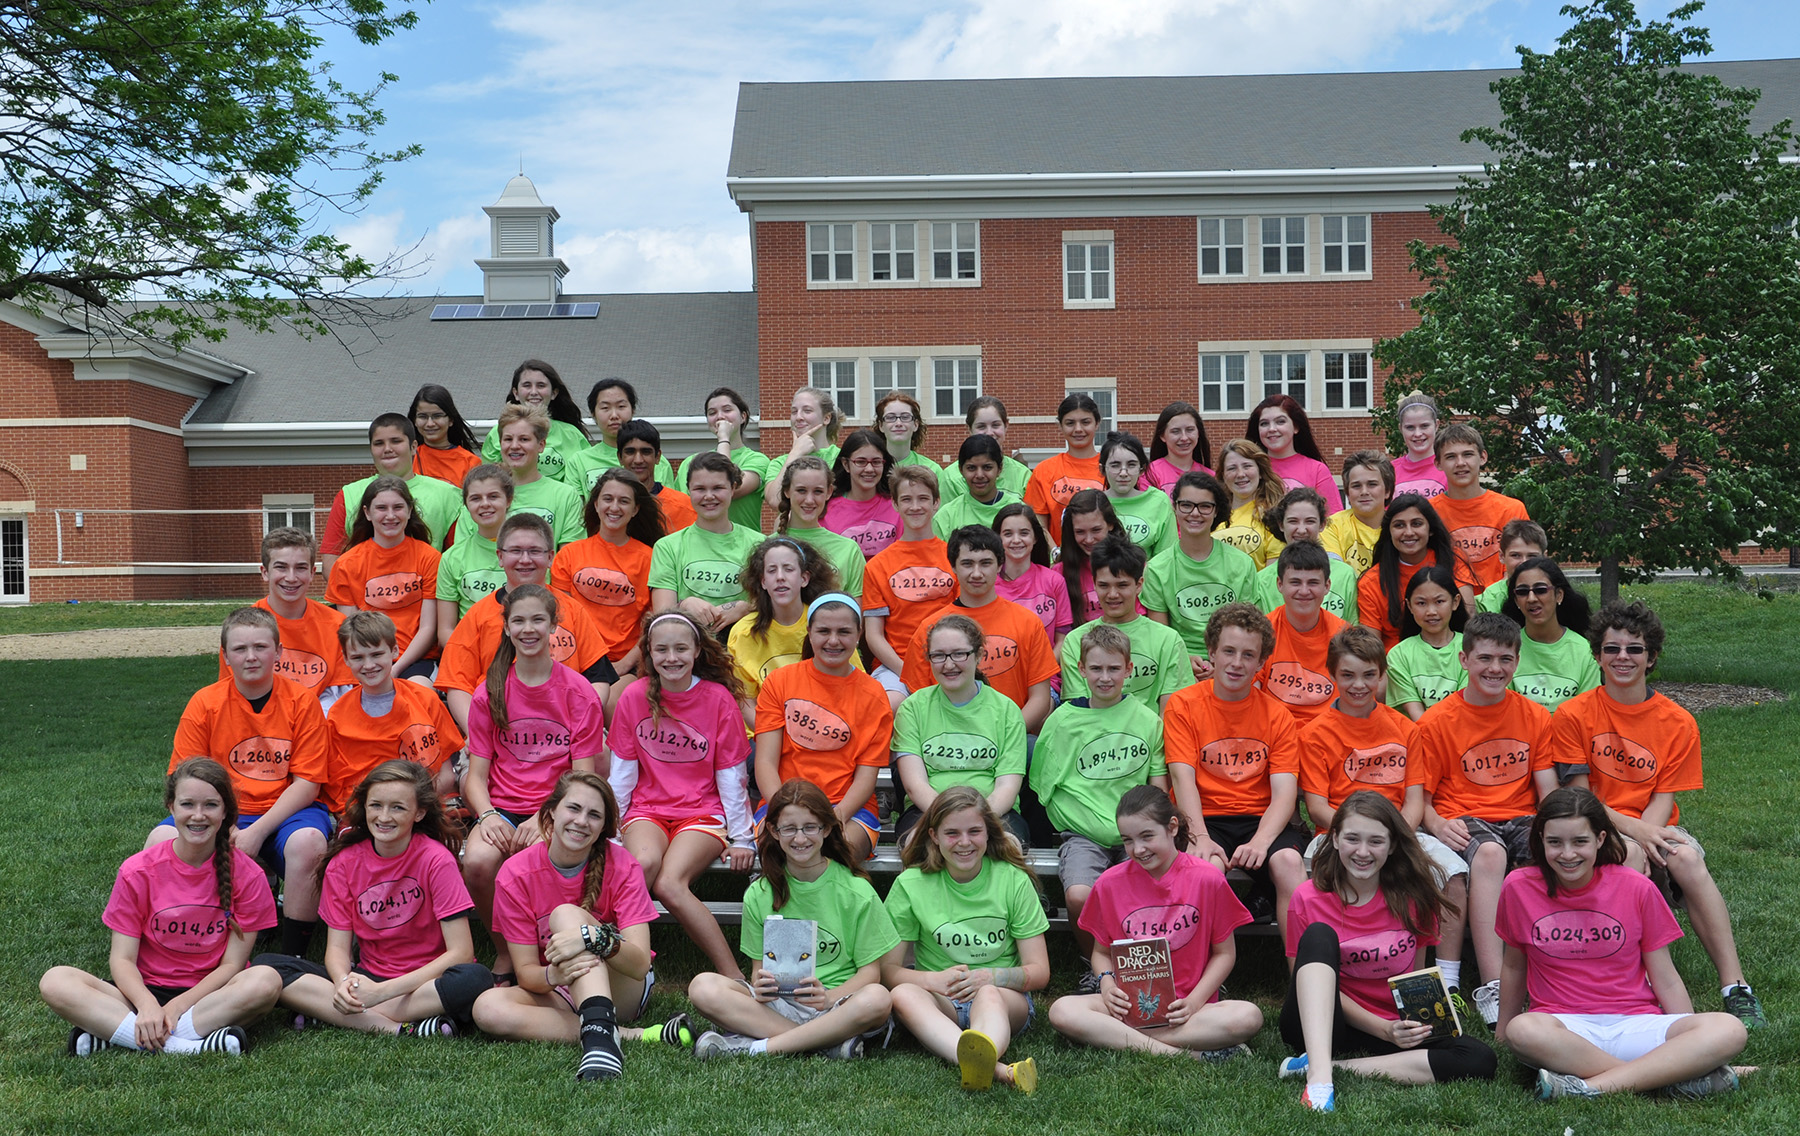 Students School 14 6th School Year Middle 2013 Wisconsi Hills Grade